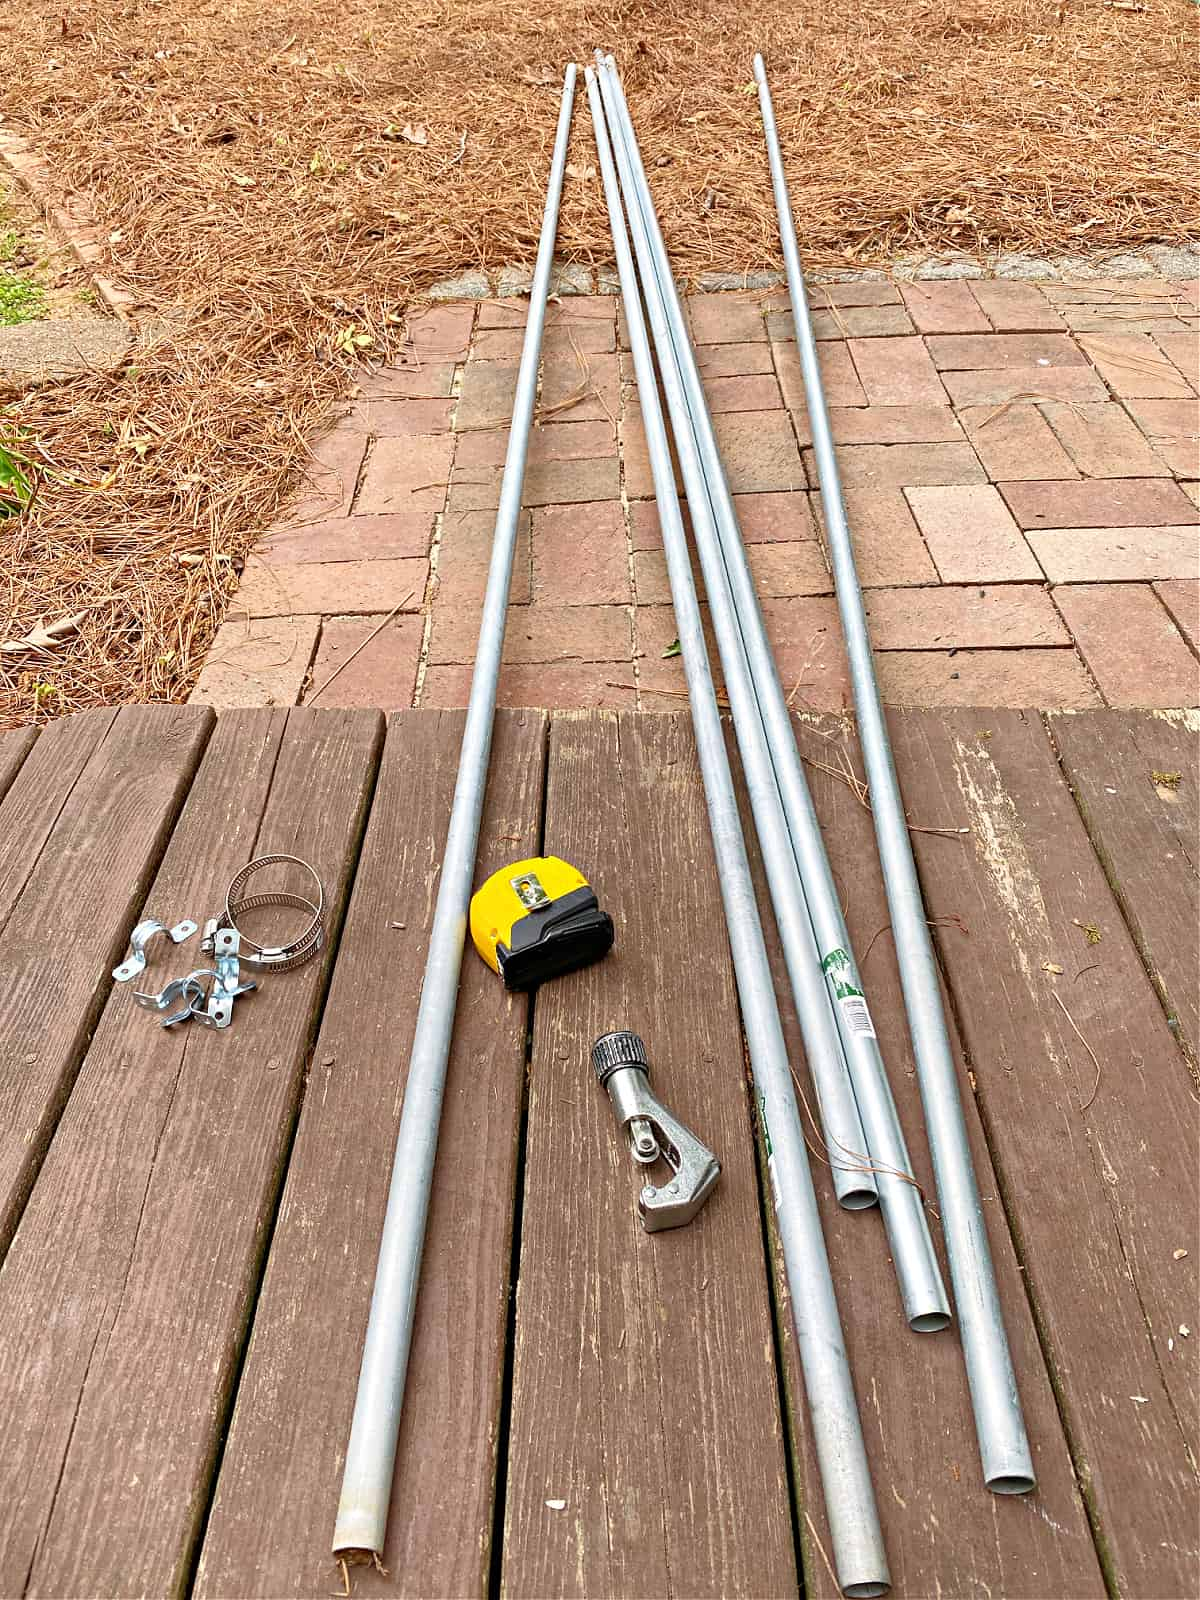 conduit pipe, tape measure, pipe cutter on ground